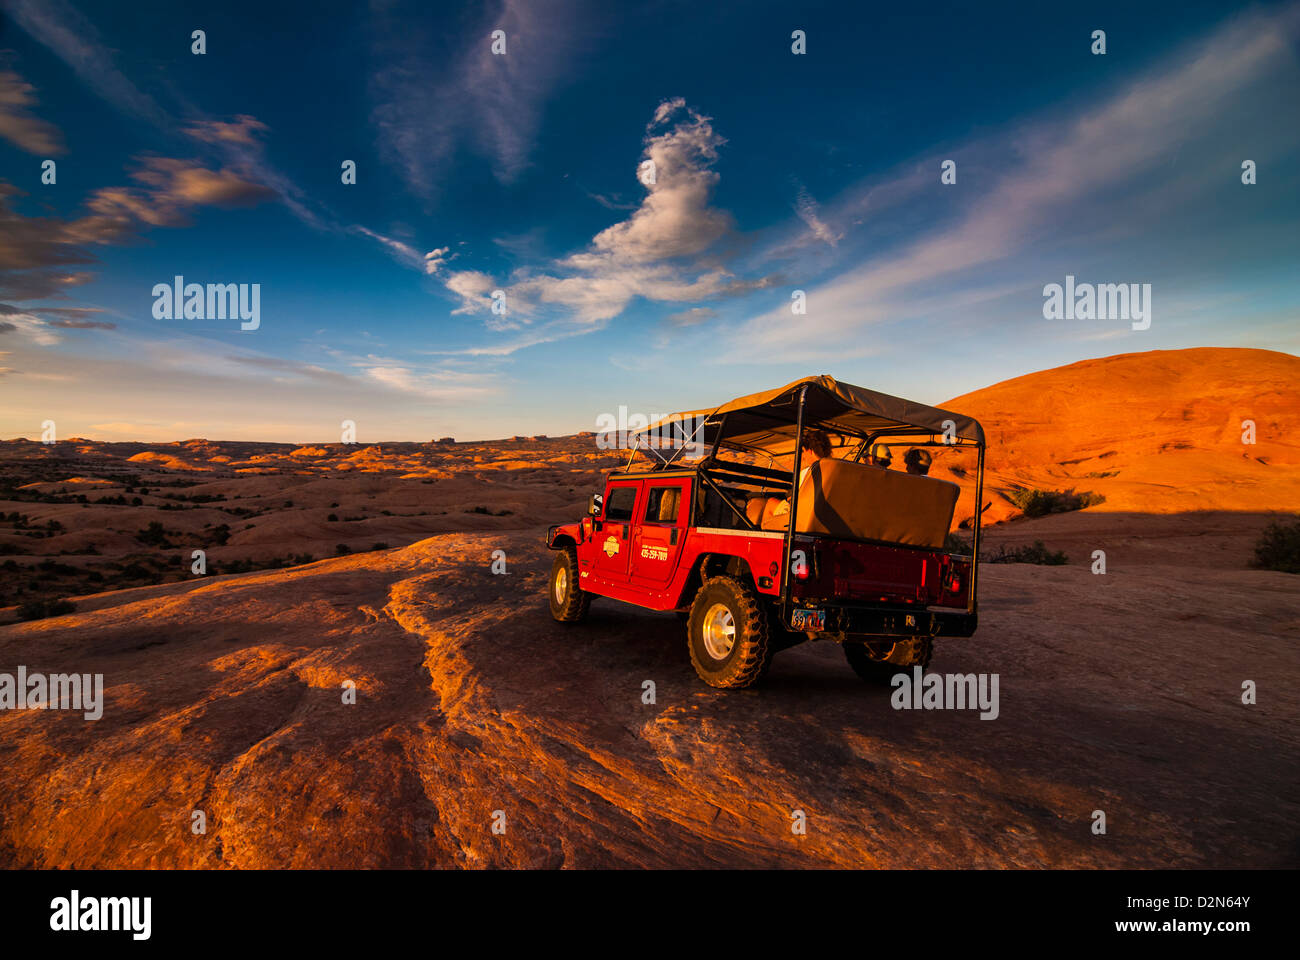 Hummer jeep on the Slickrock Trail at sunset, Moab, Utah, United States of America, North America - Stock Image